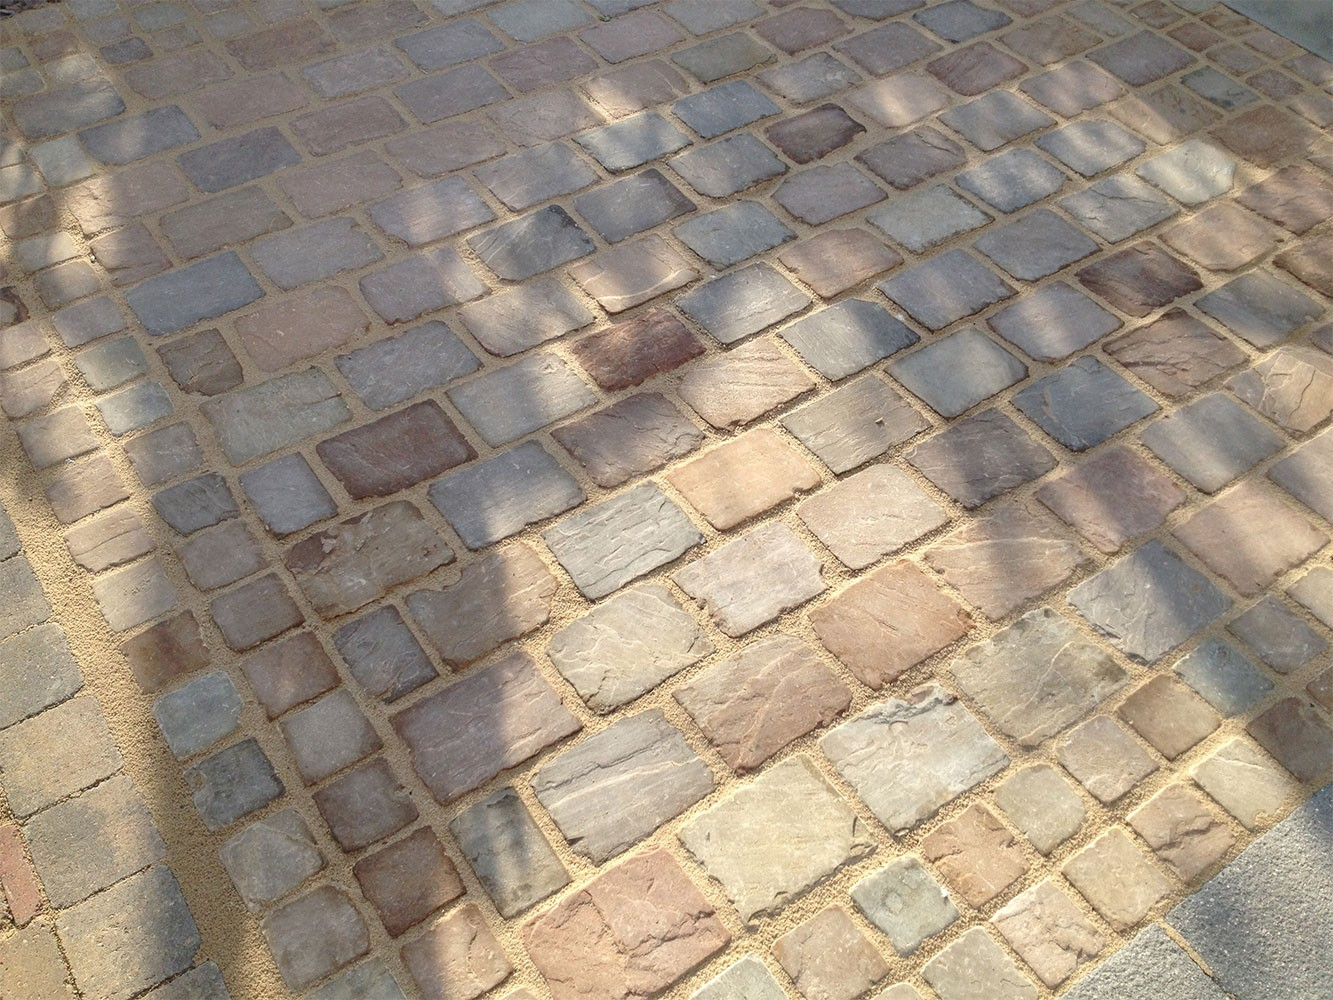 Hardstone - Indian Sandstone Cobbles (Setts) - Tumbled Himalayan